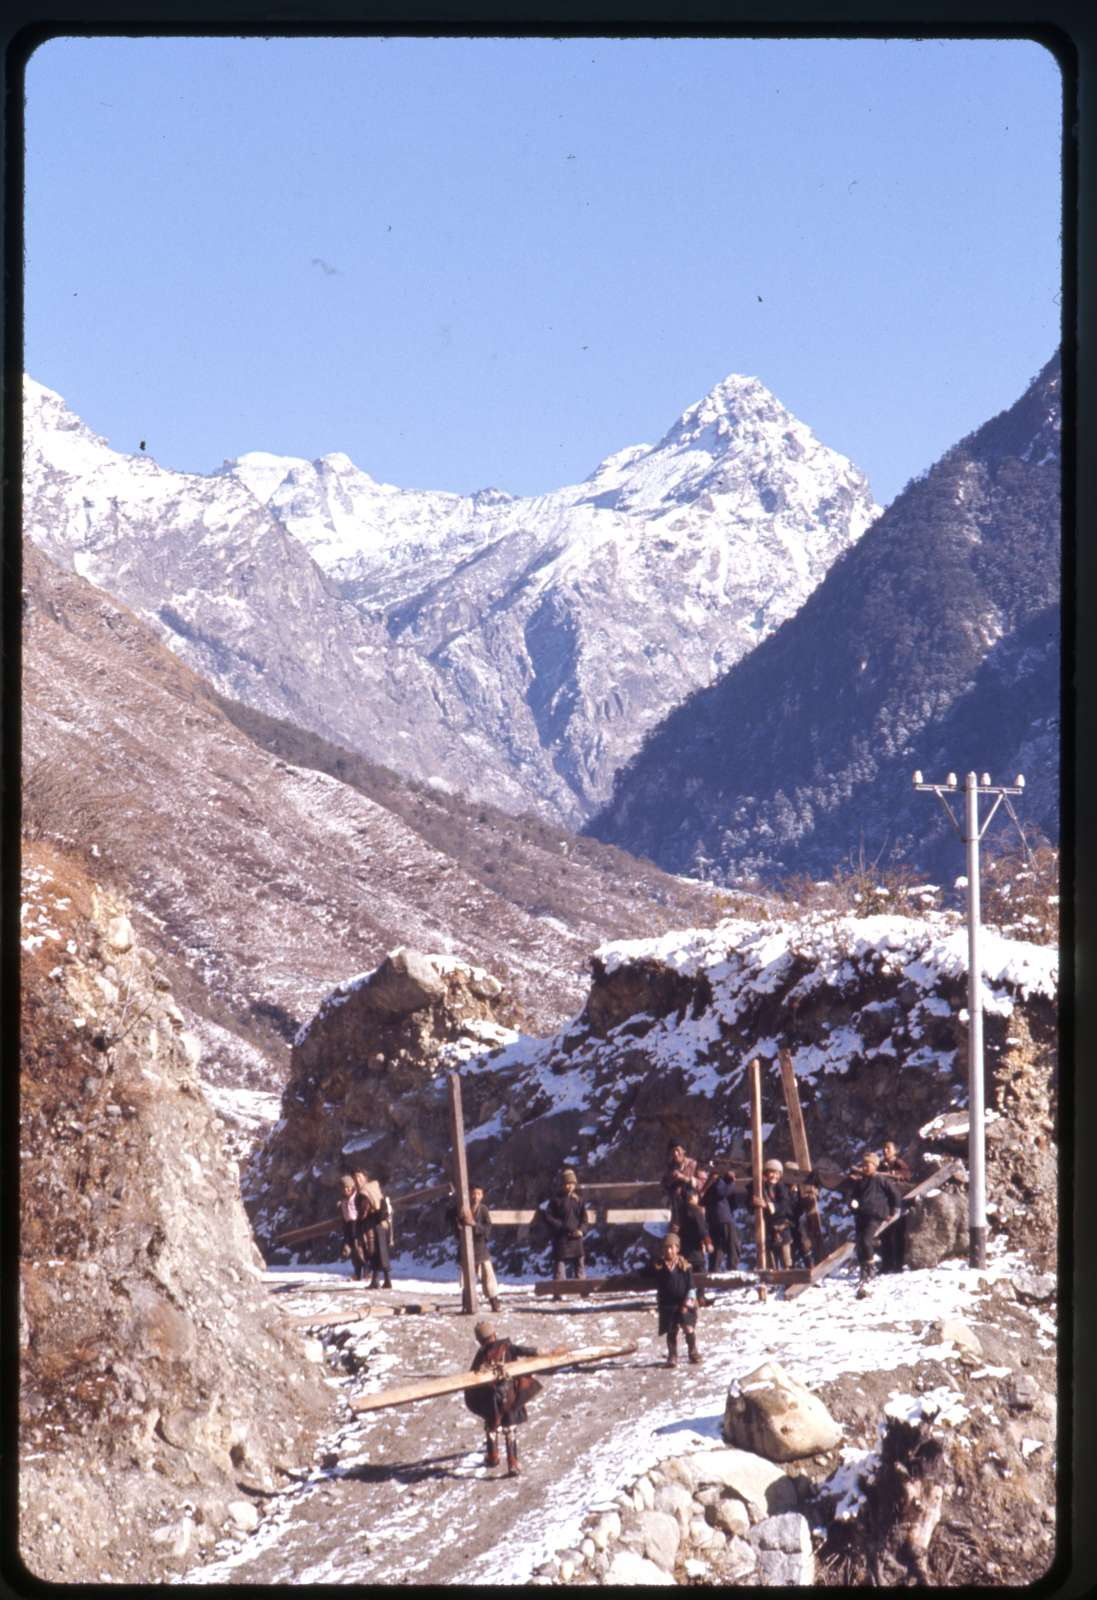 [Boys from Lachung carrying wood in the mountains, Sikkim]